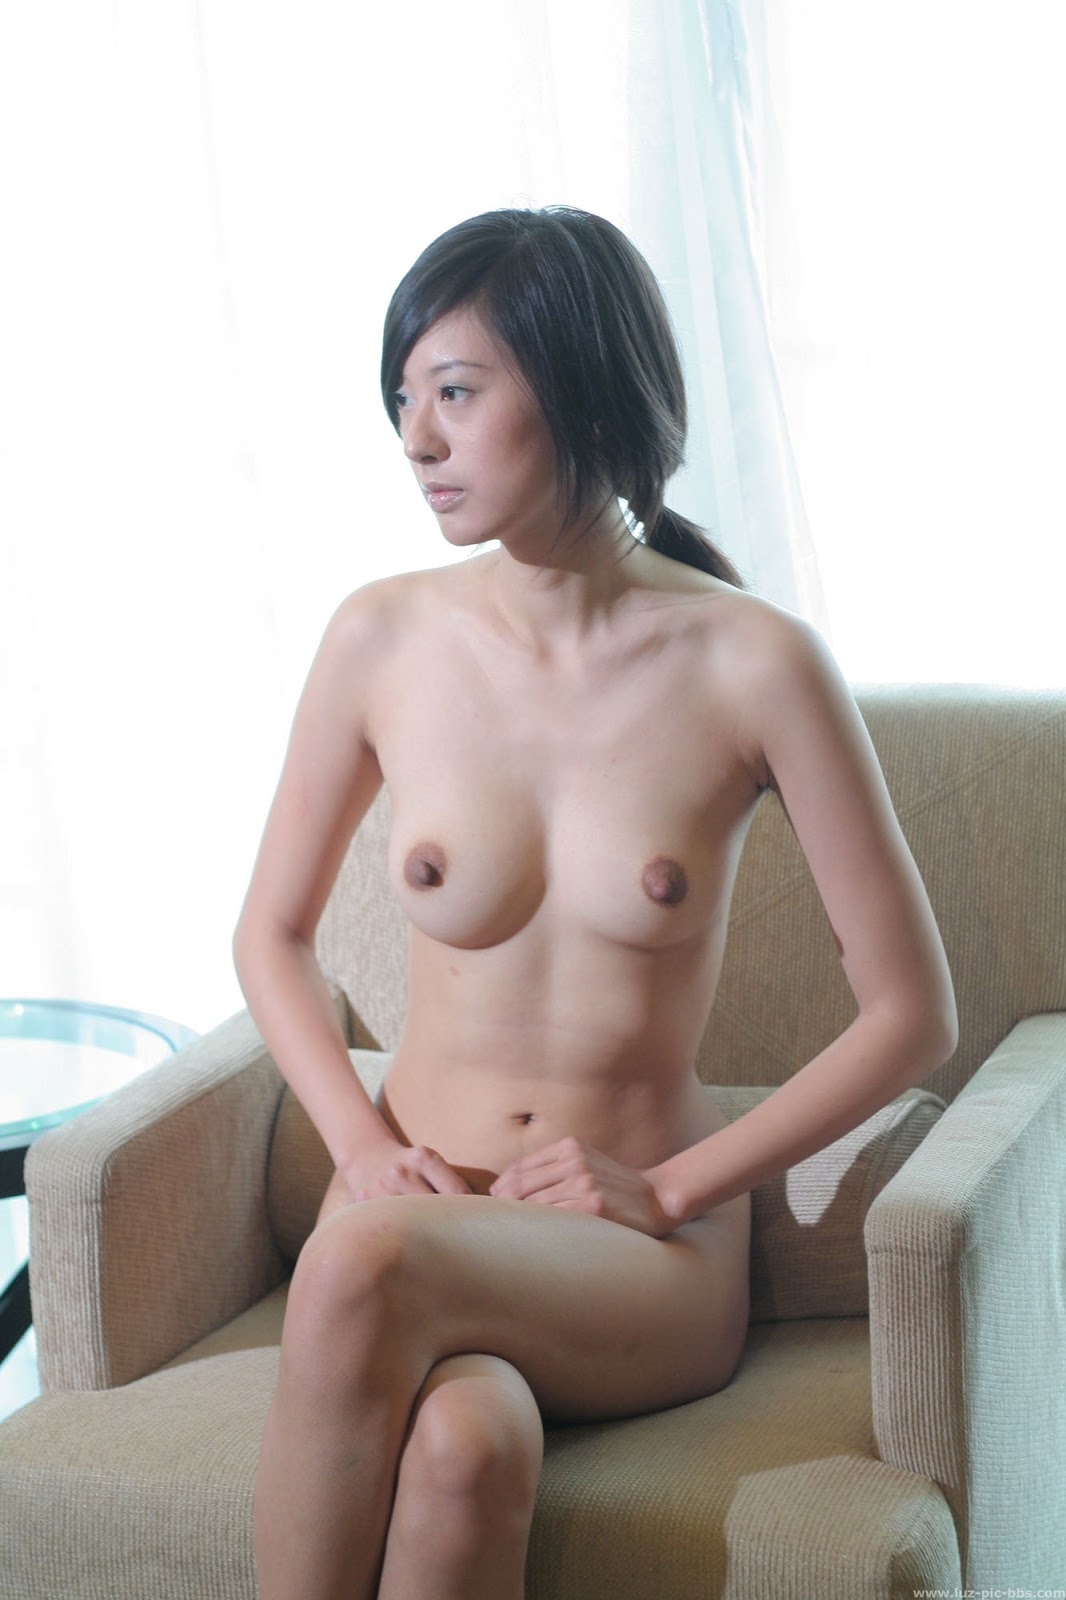 Nude Malaysian Girls  Hot Girl Hd Wallpaper-9580